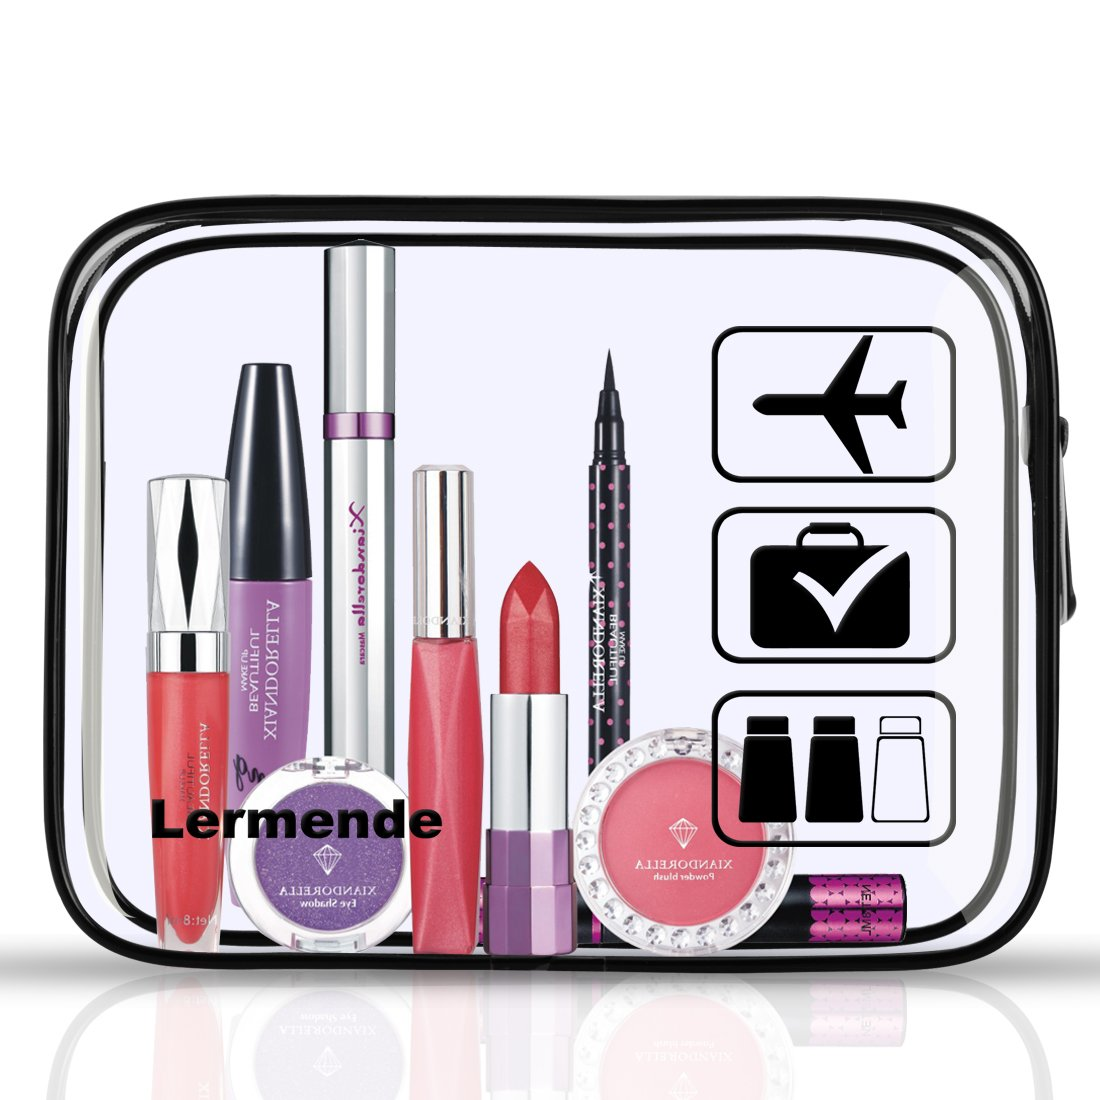 3pcs Lermende TSA Approved Toiletry Bag with Zipper Travel Luggage Pouch Carry On Clear Airport Airline Compliant Bag Travel Cosmetic Makeup Bags - Black by Lermende (Image #4)